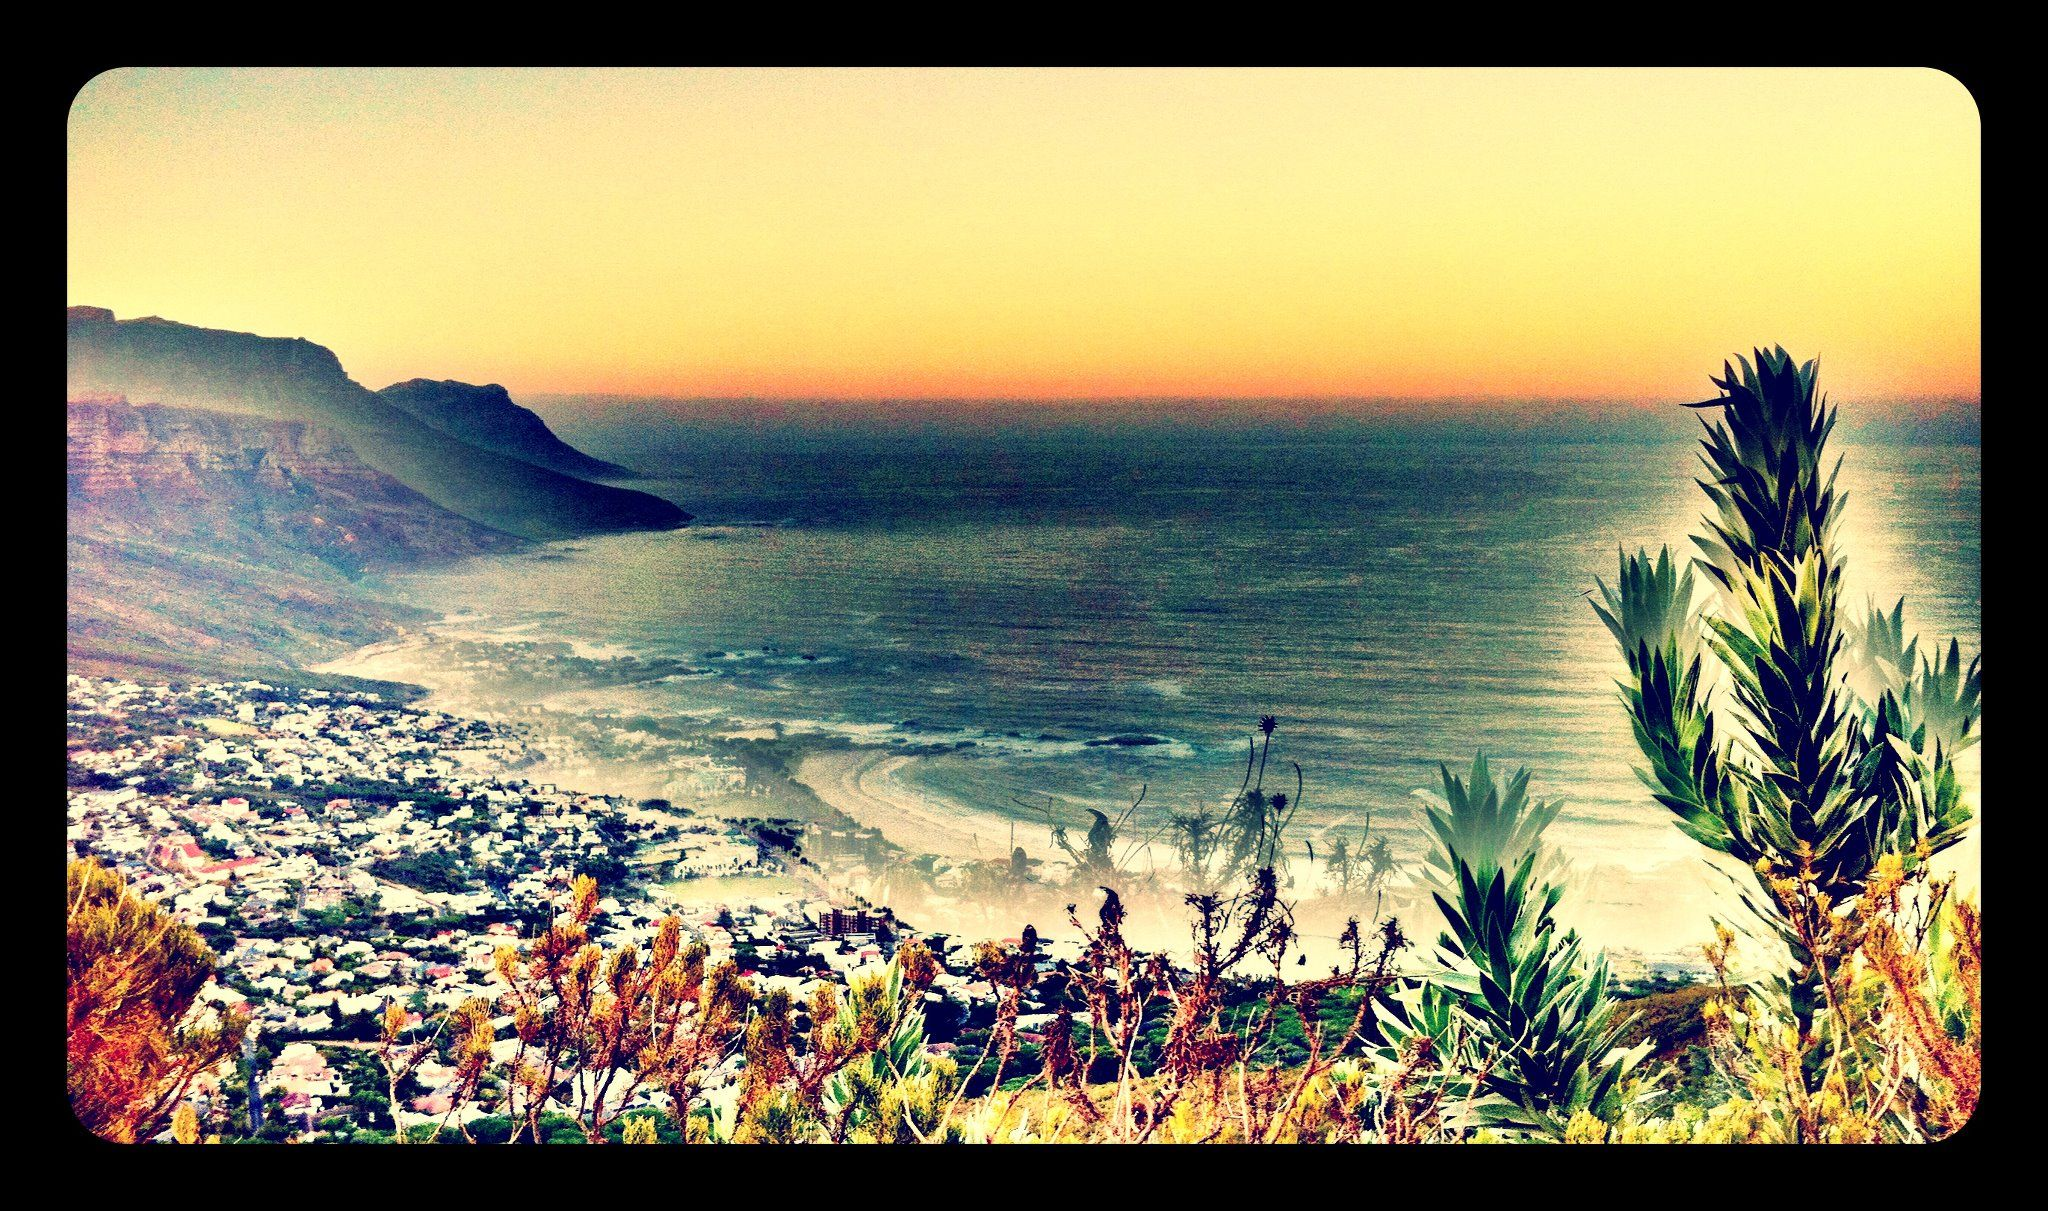 Cape Town where I spent some very happy years